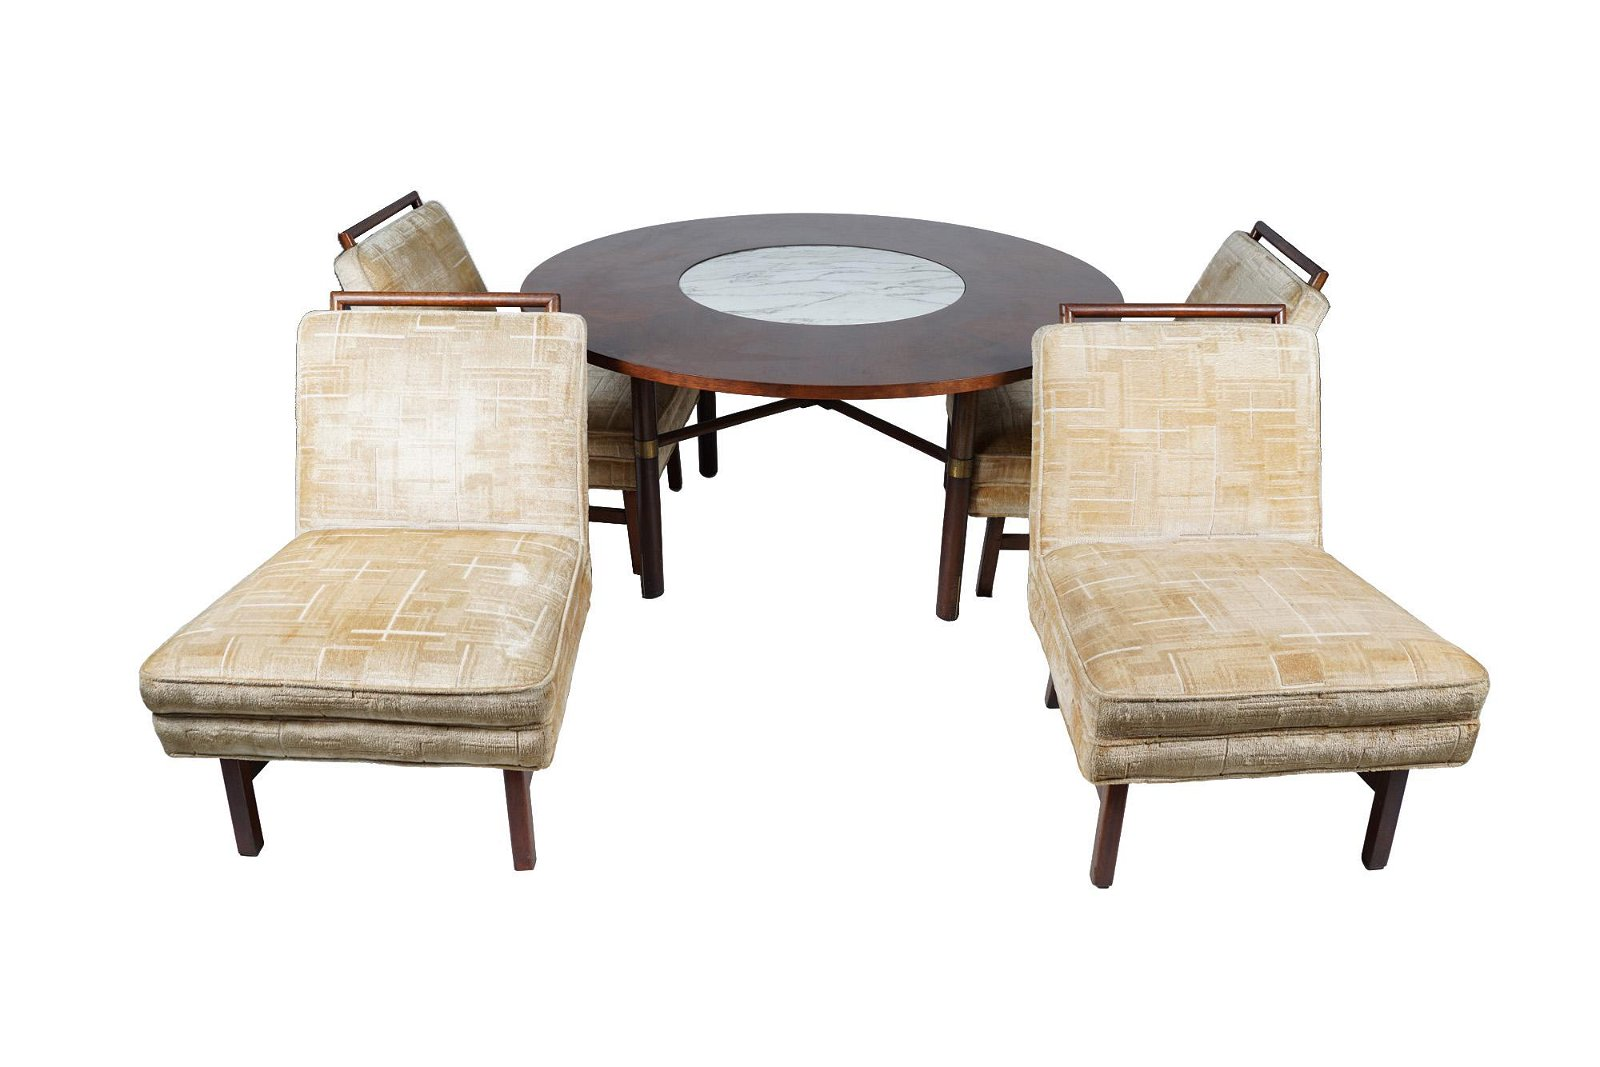 WILLIAM HAINES STYLE ROUND GAME TABLE WITH FOUR CHAIRS